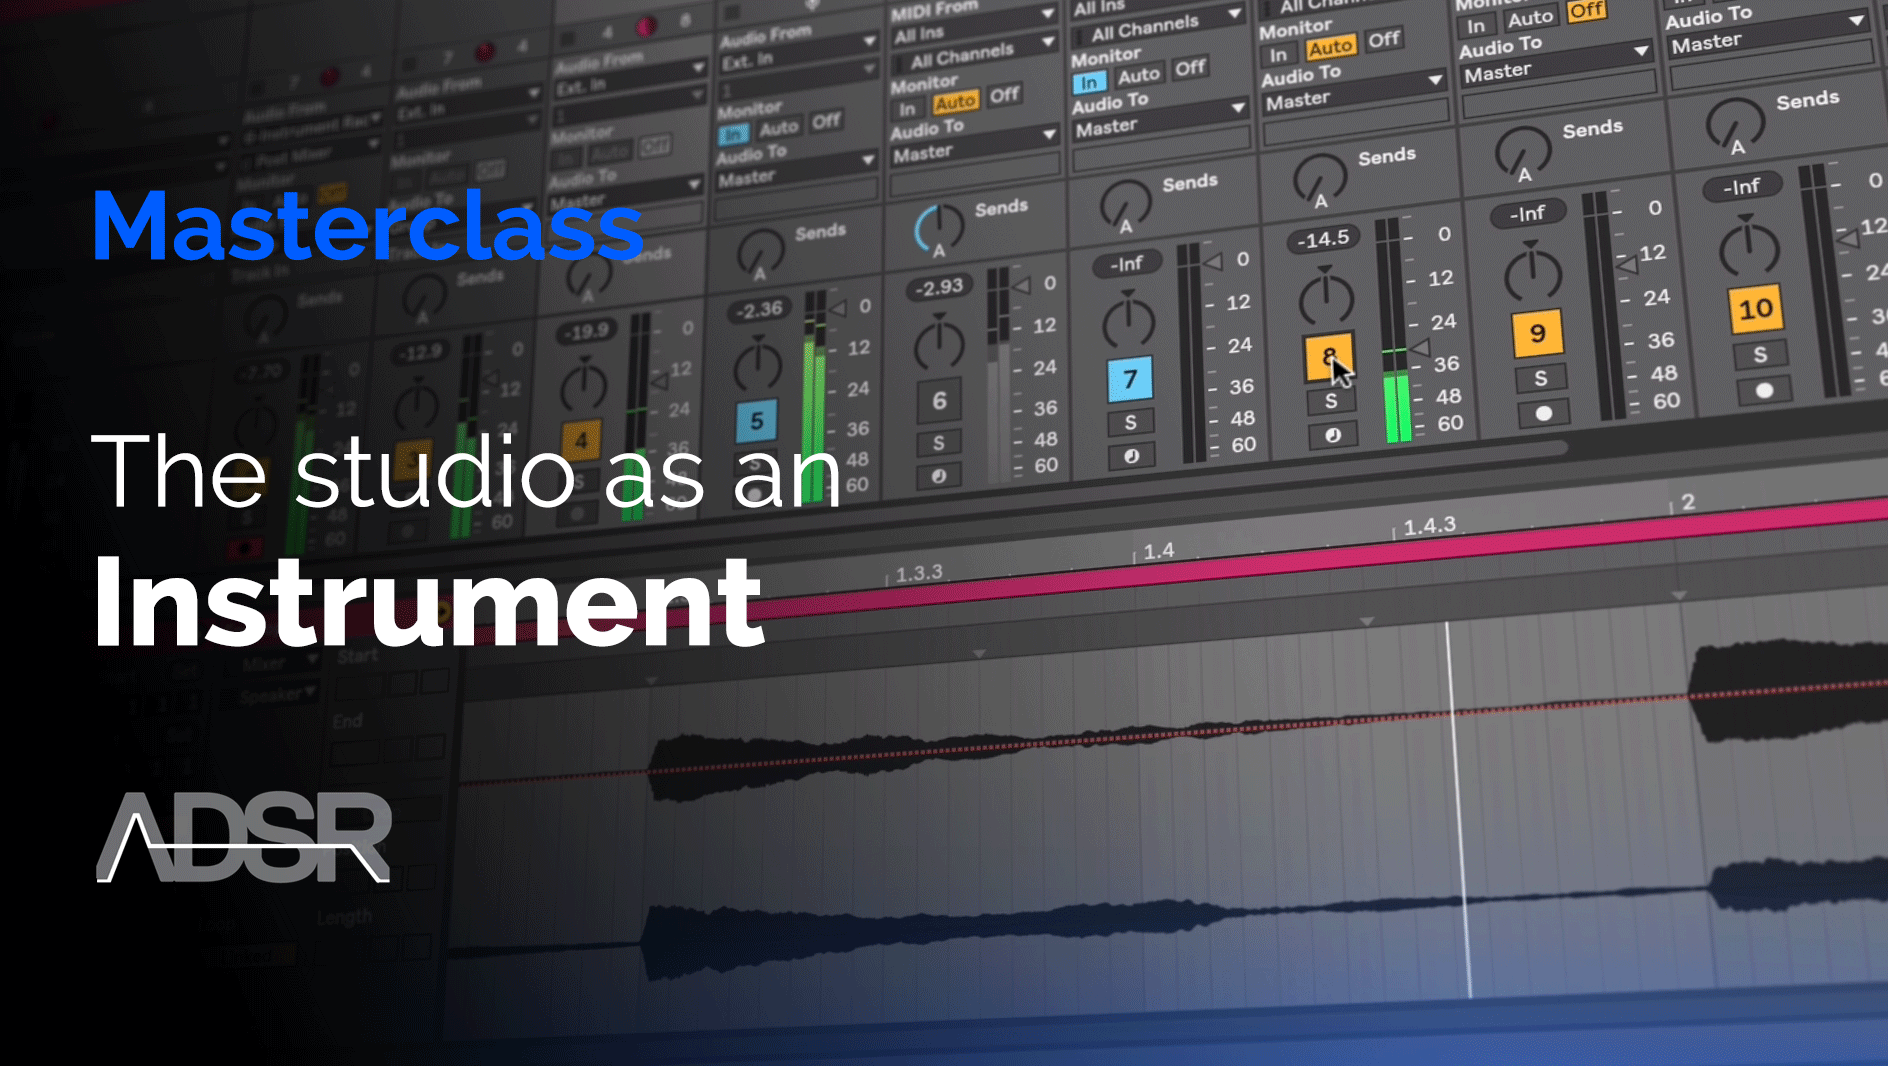 The studio as an instrument - explore classic techniques based on tape editing, effects processing and audio routing.